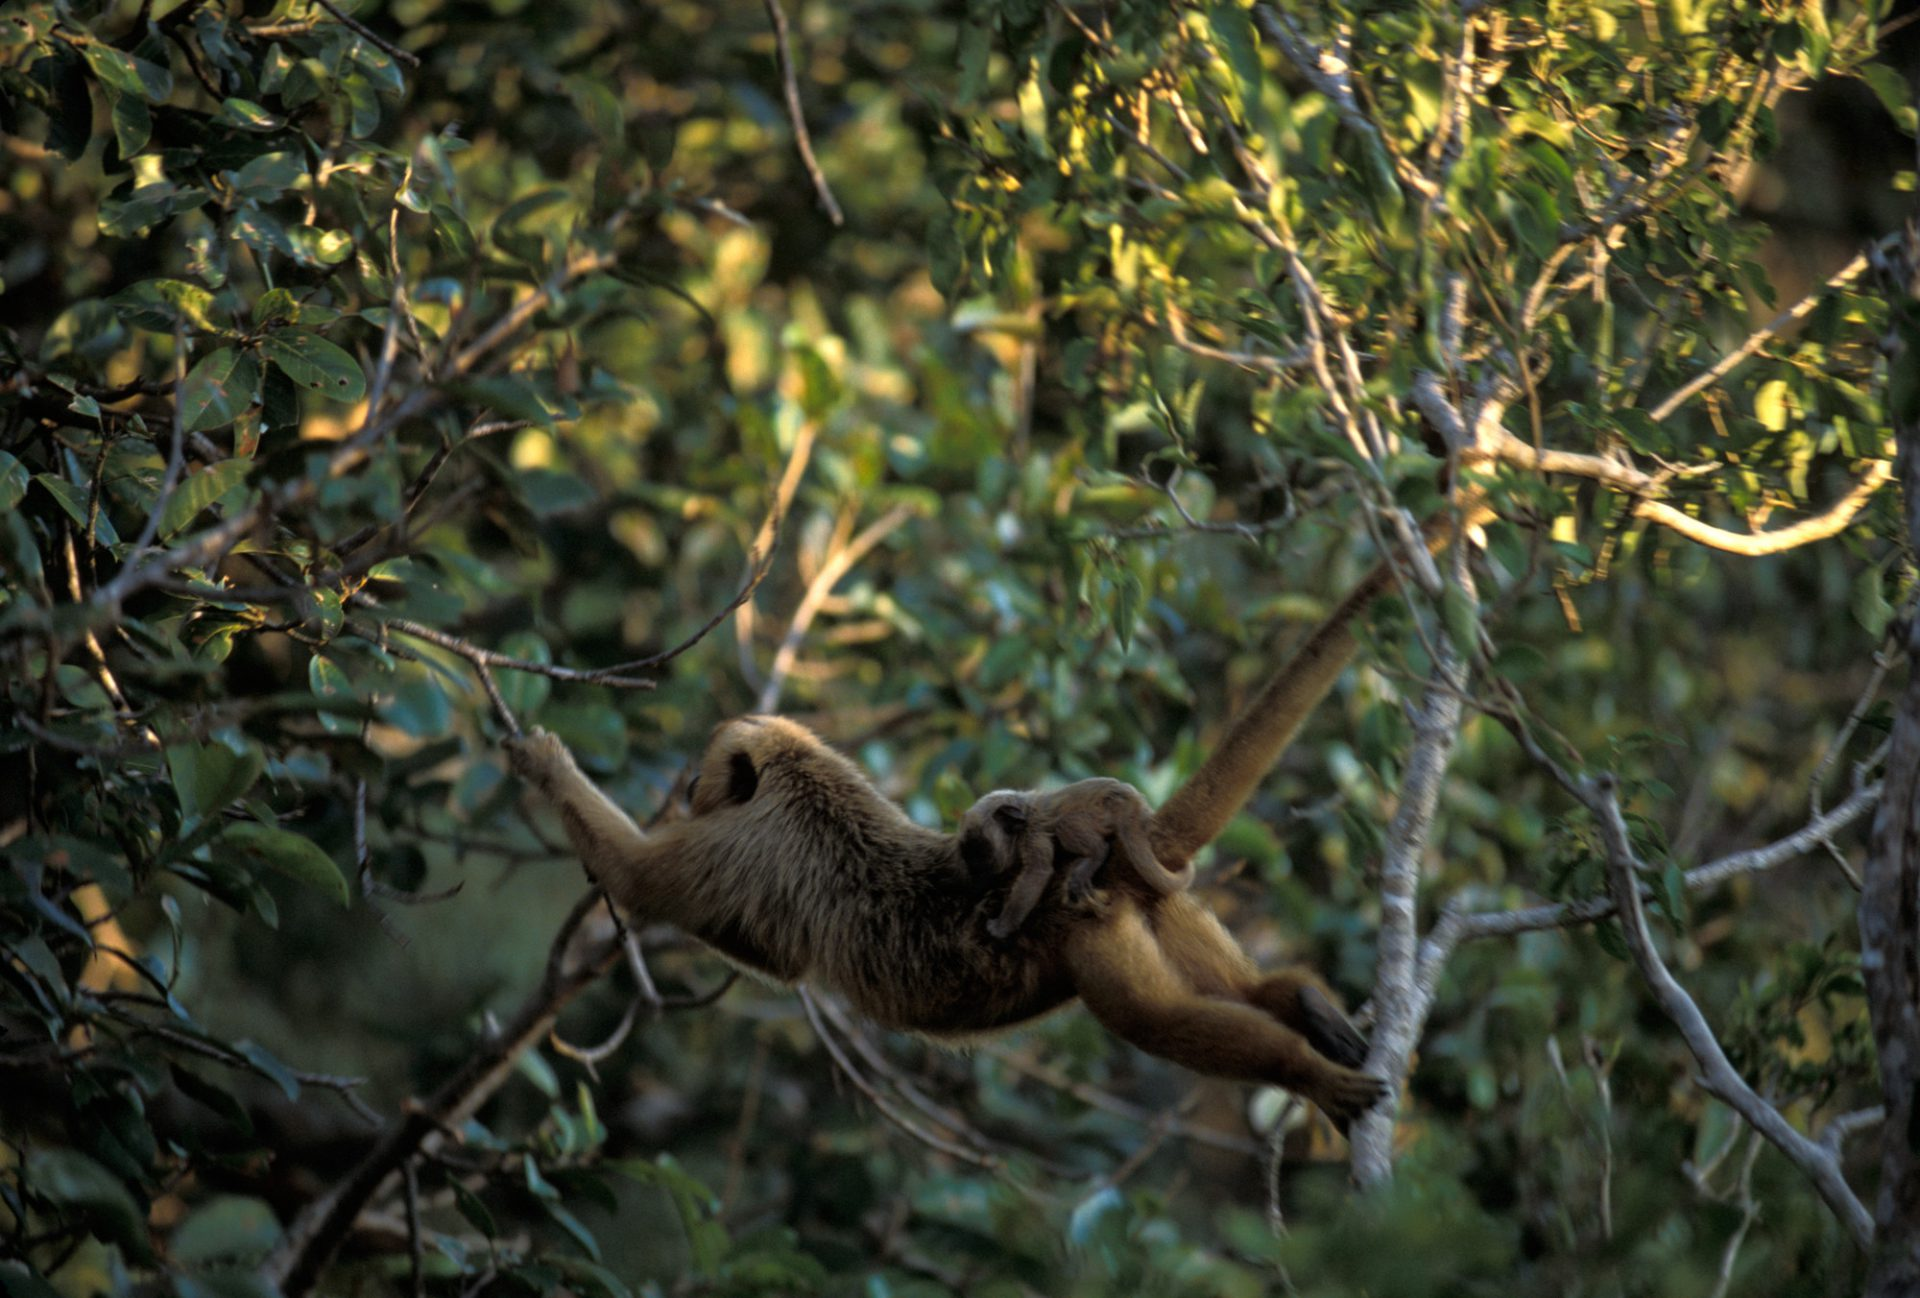 A female black howler monkey (Alouatta caraya) swings from the tree branches in the Pantanal, Brazil.